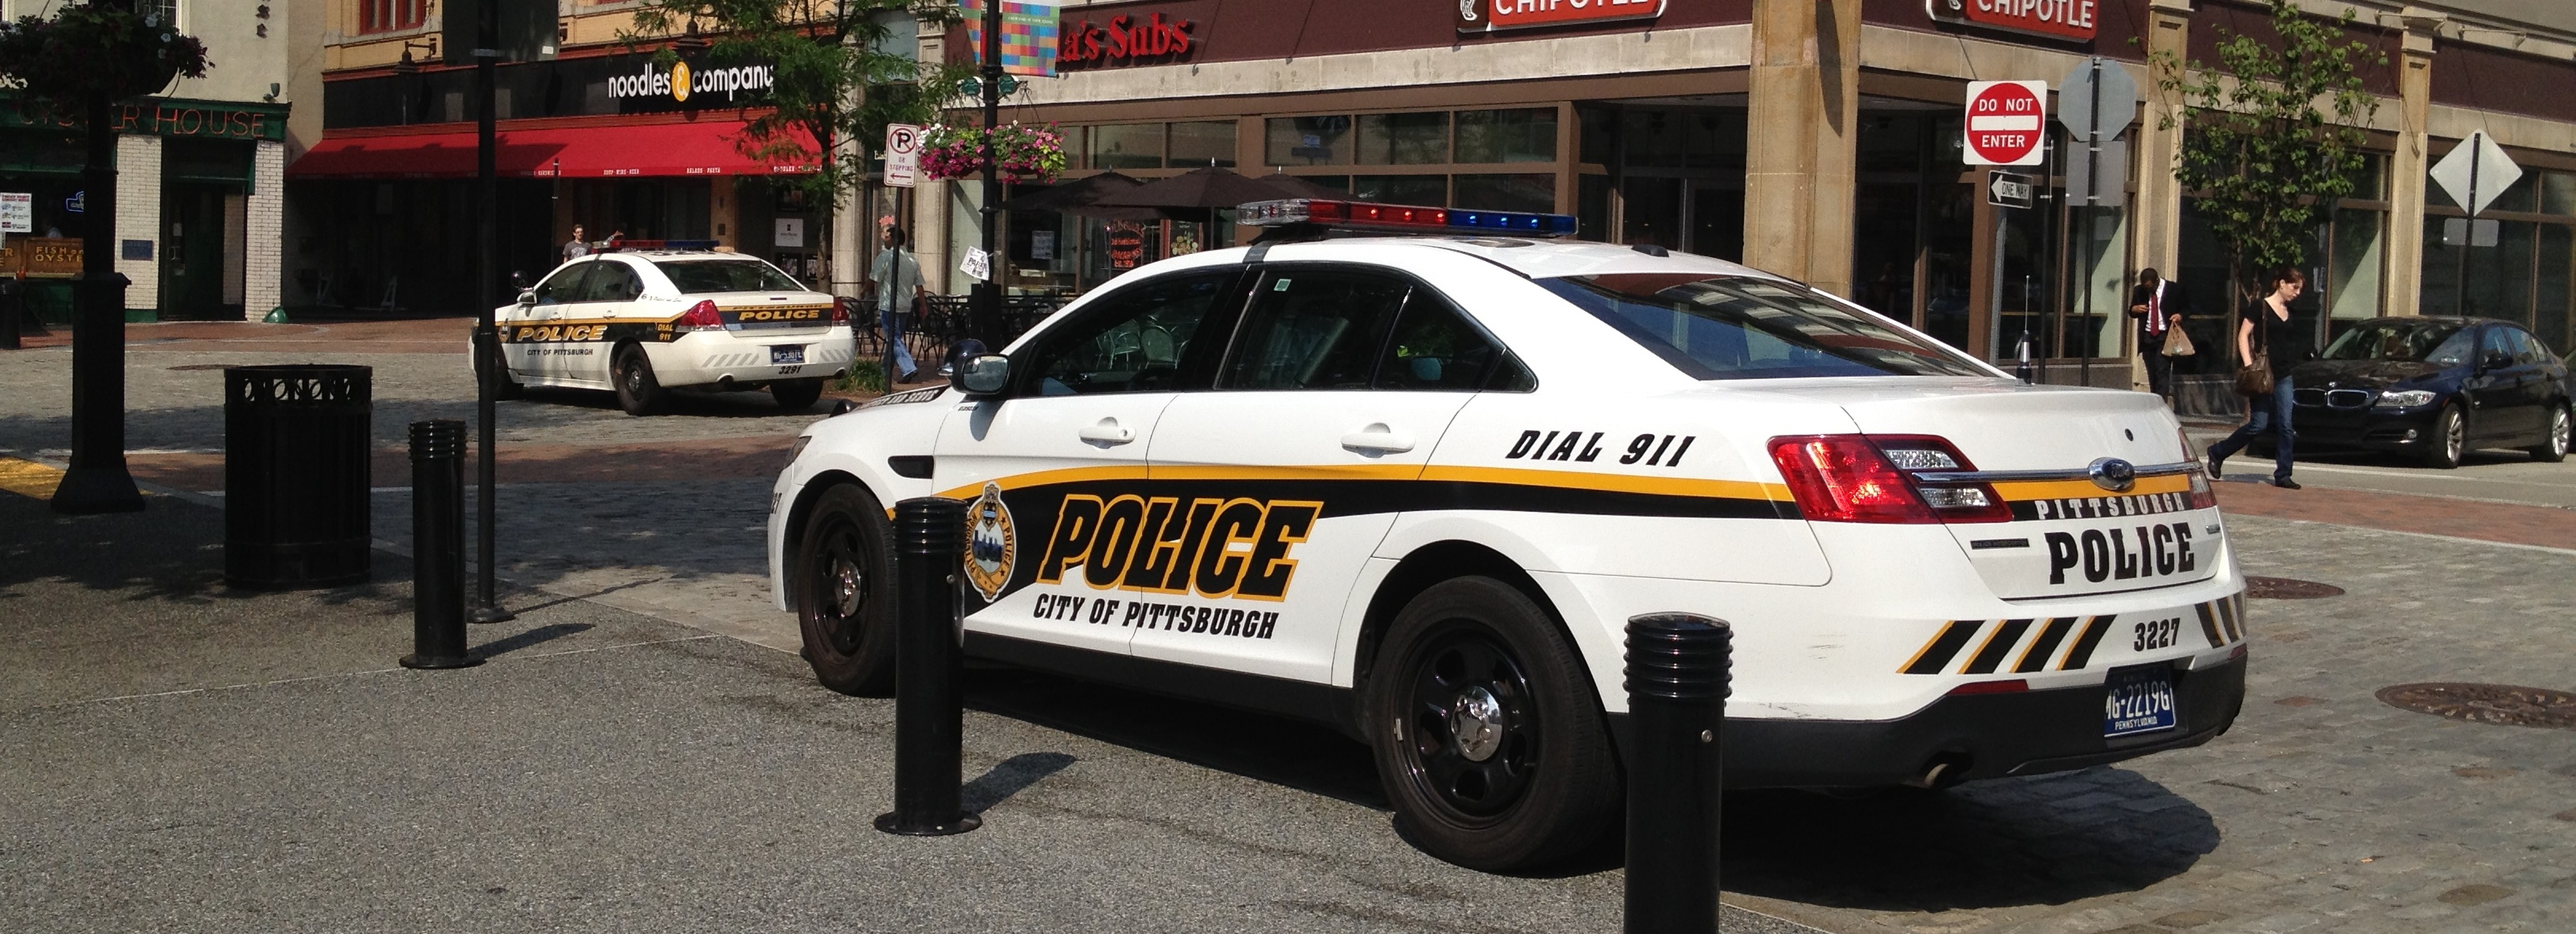 Pennsylvania Supreme Court rules against police union in arbitration award case